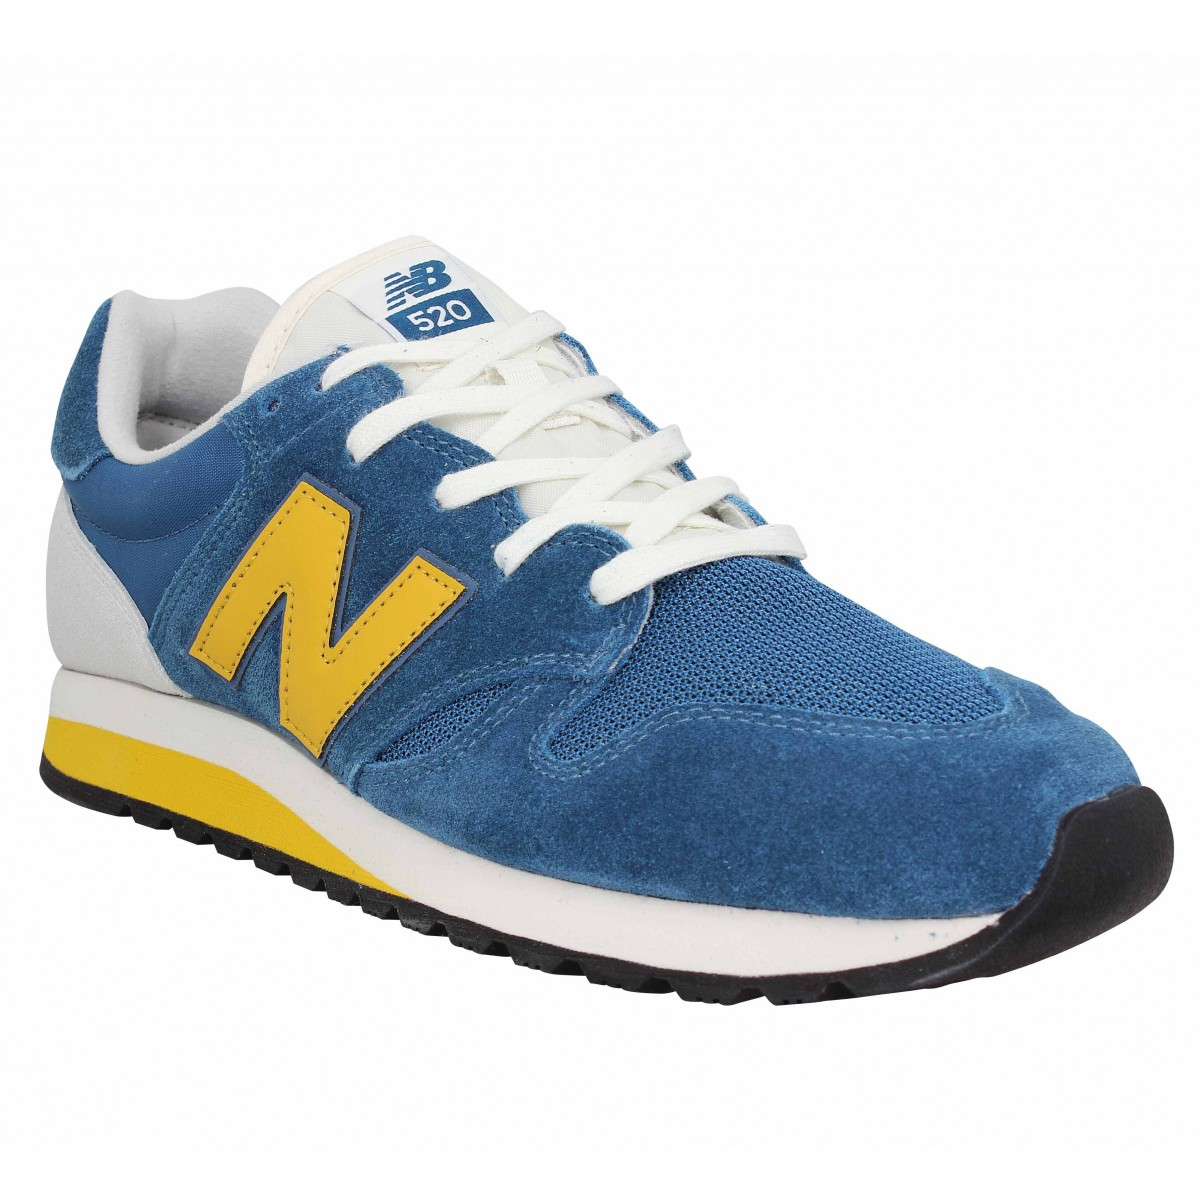 New Balance Marque 520 Velours Toile...